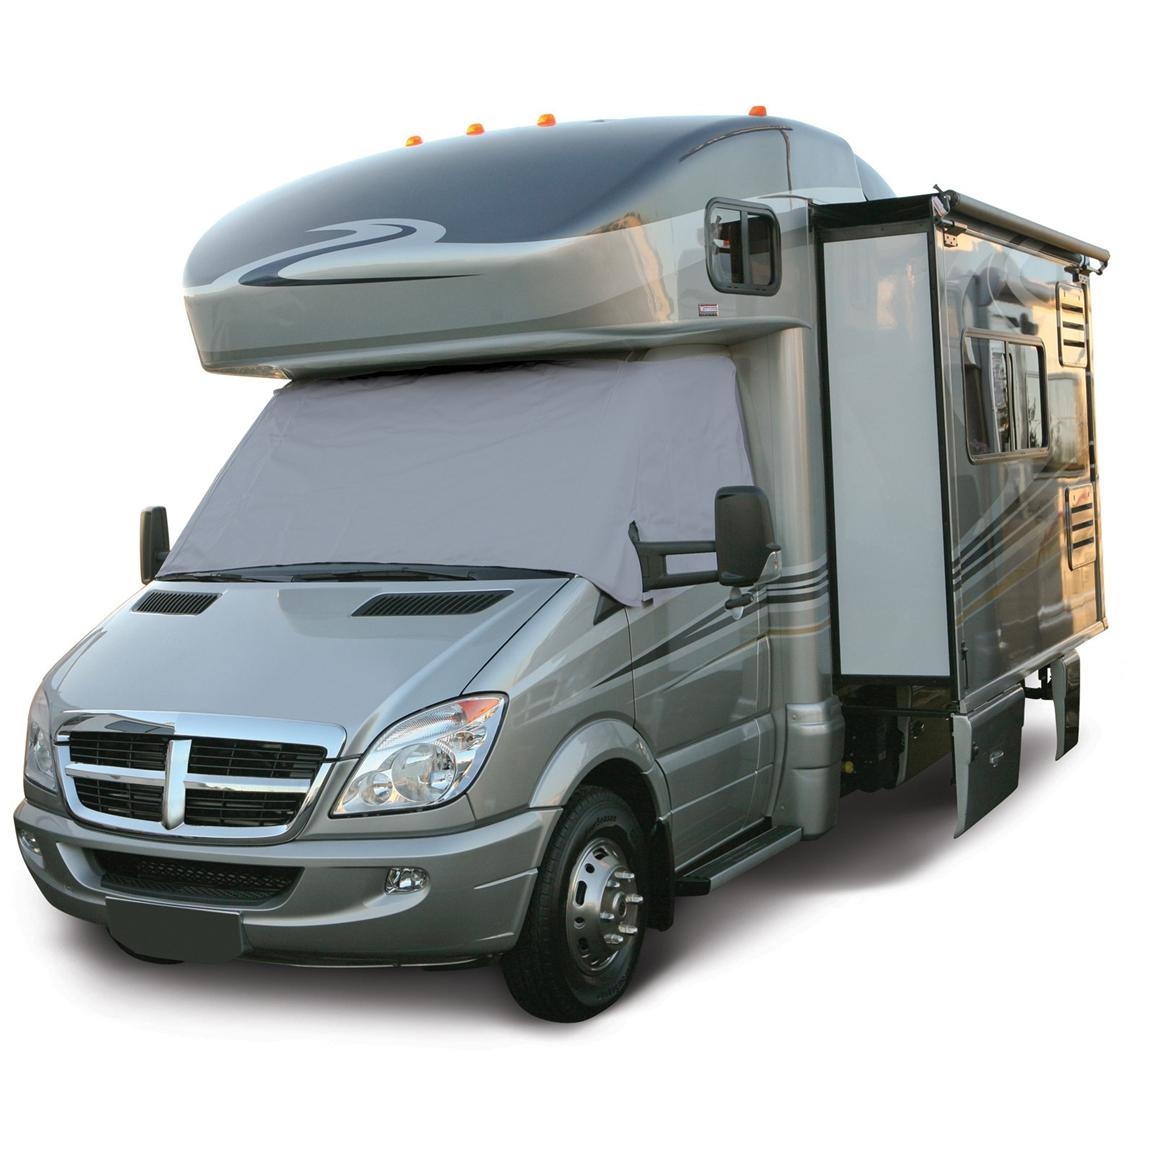 Classic Accessories™ RV Windshield Cover